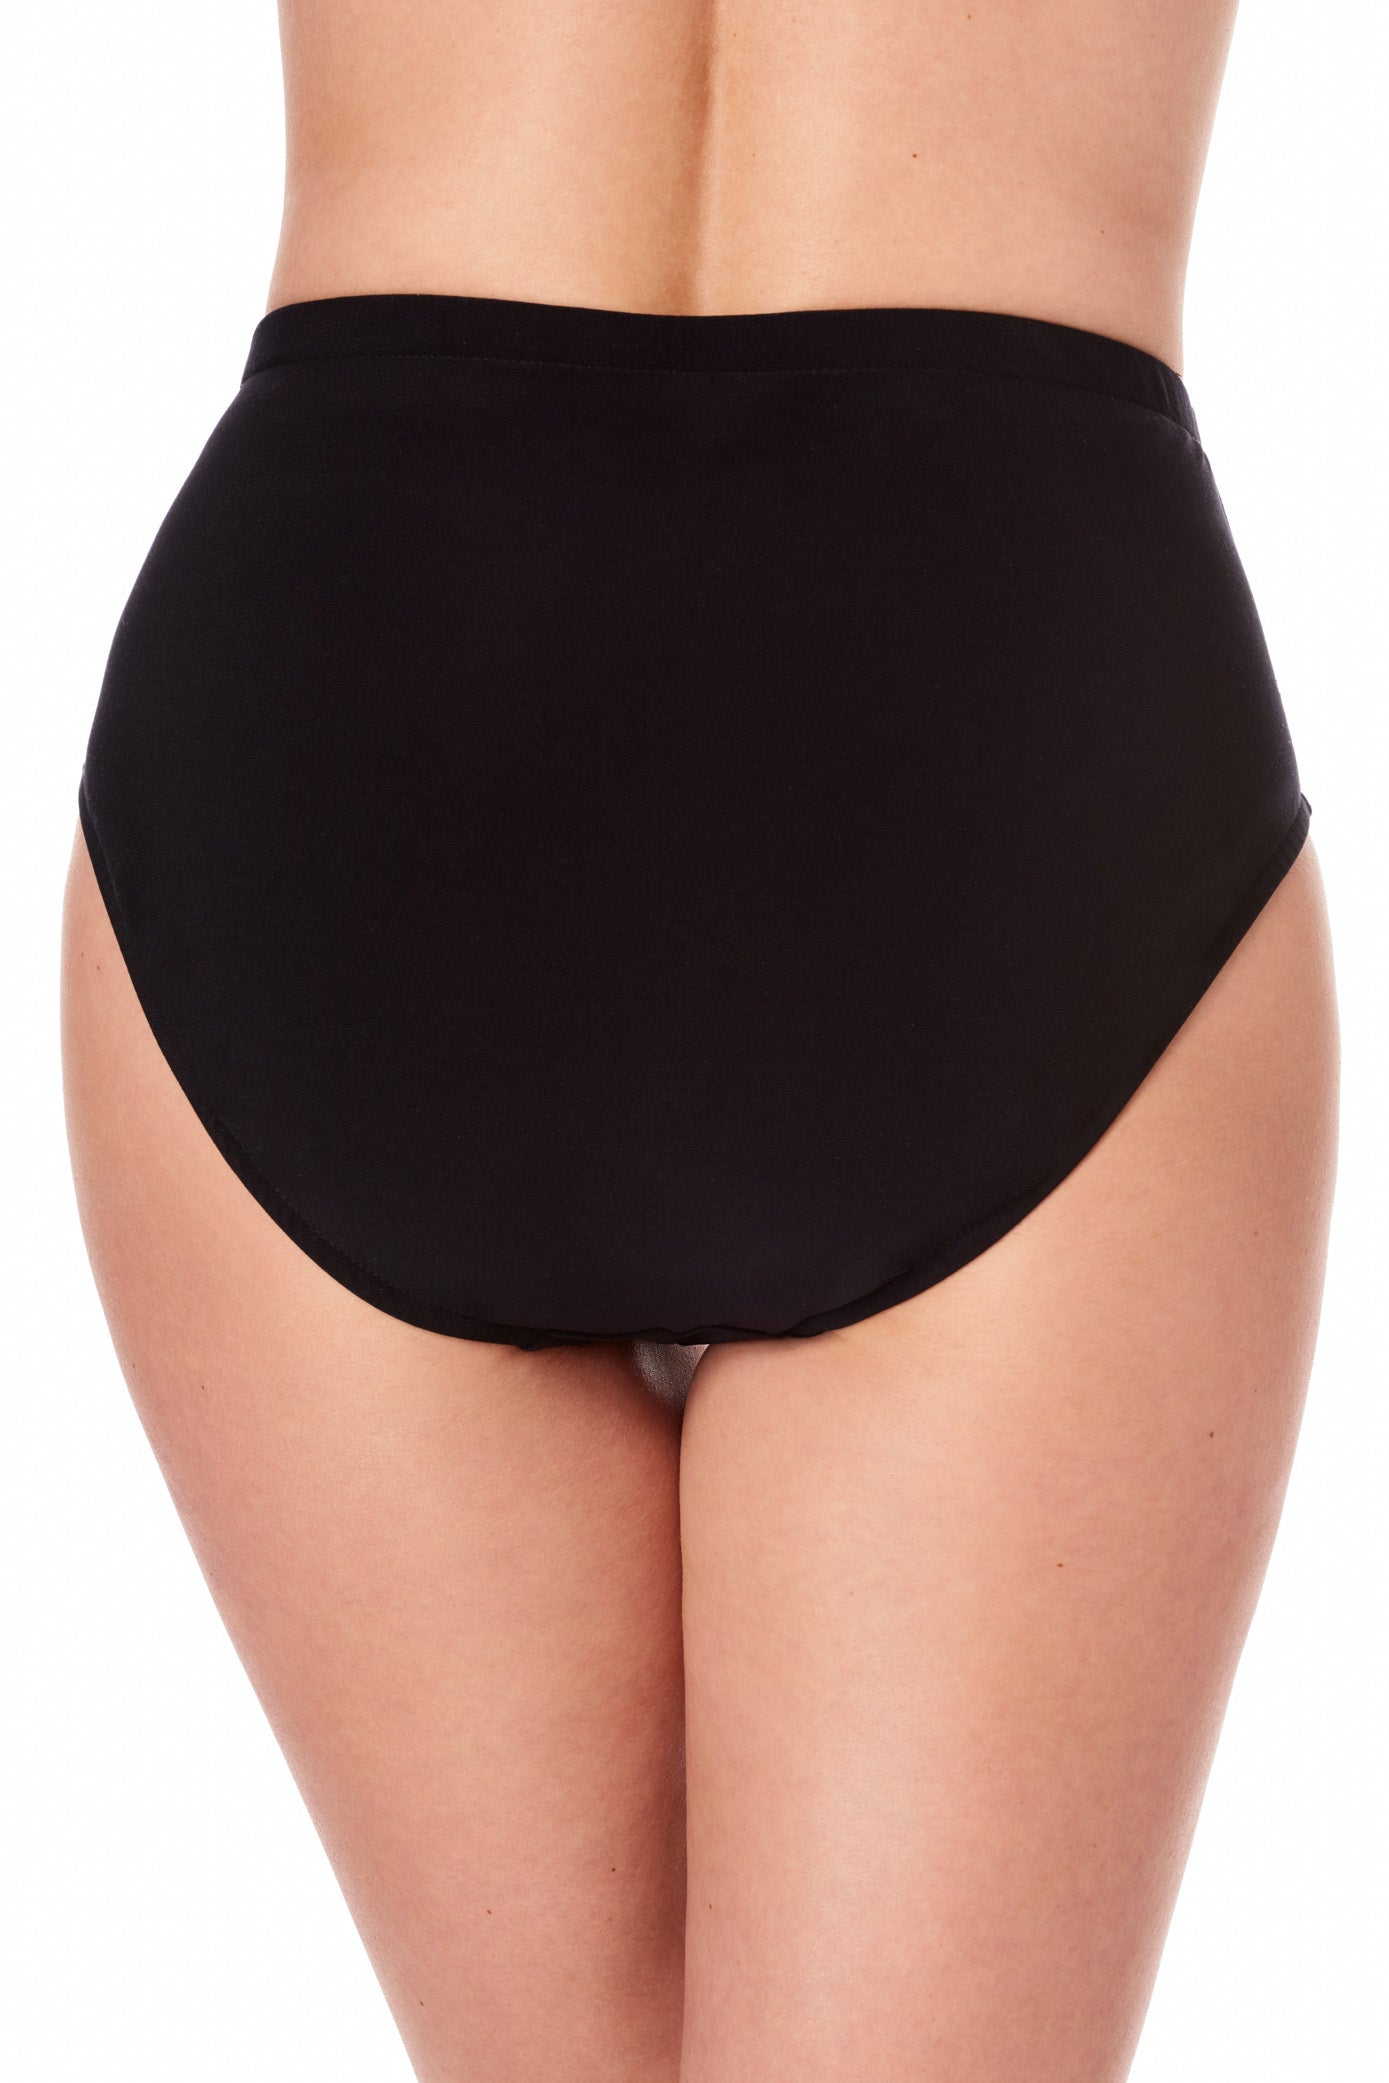 Swimwear sizing fits smaller than apparel sizing, order one size up for more coverage Designed for a classic fit Pull on Full coverage High rise Tops and bottoms sold separately Nylon/lycra Hand wash